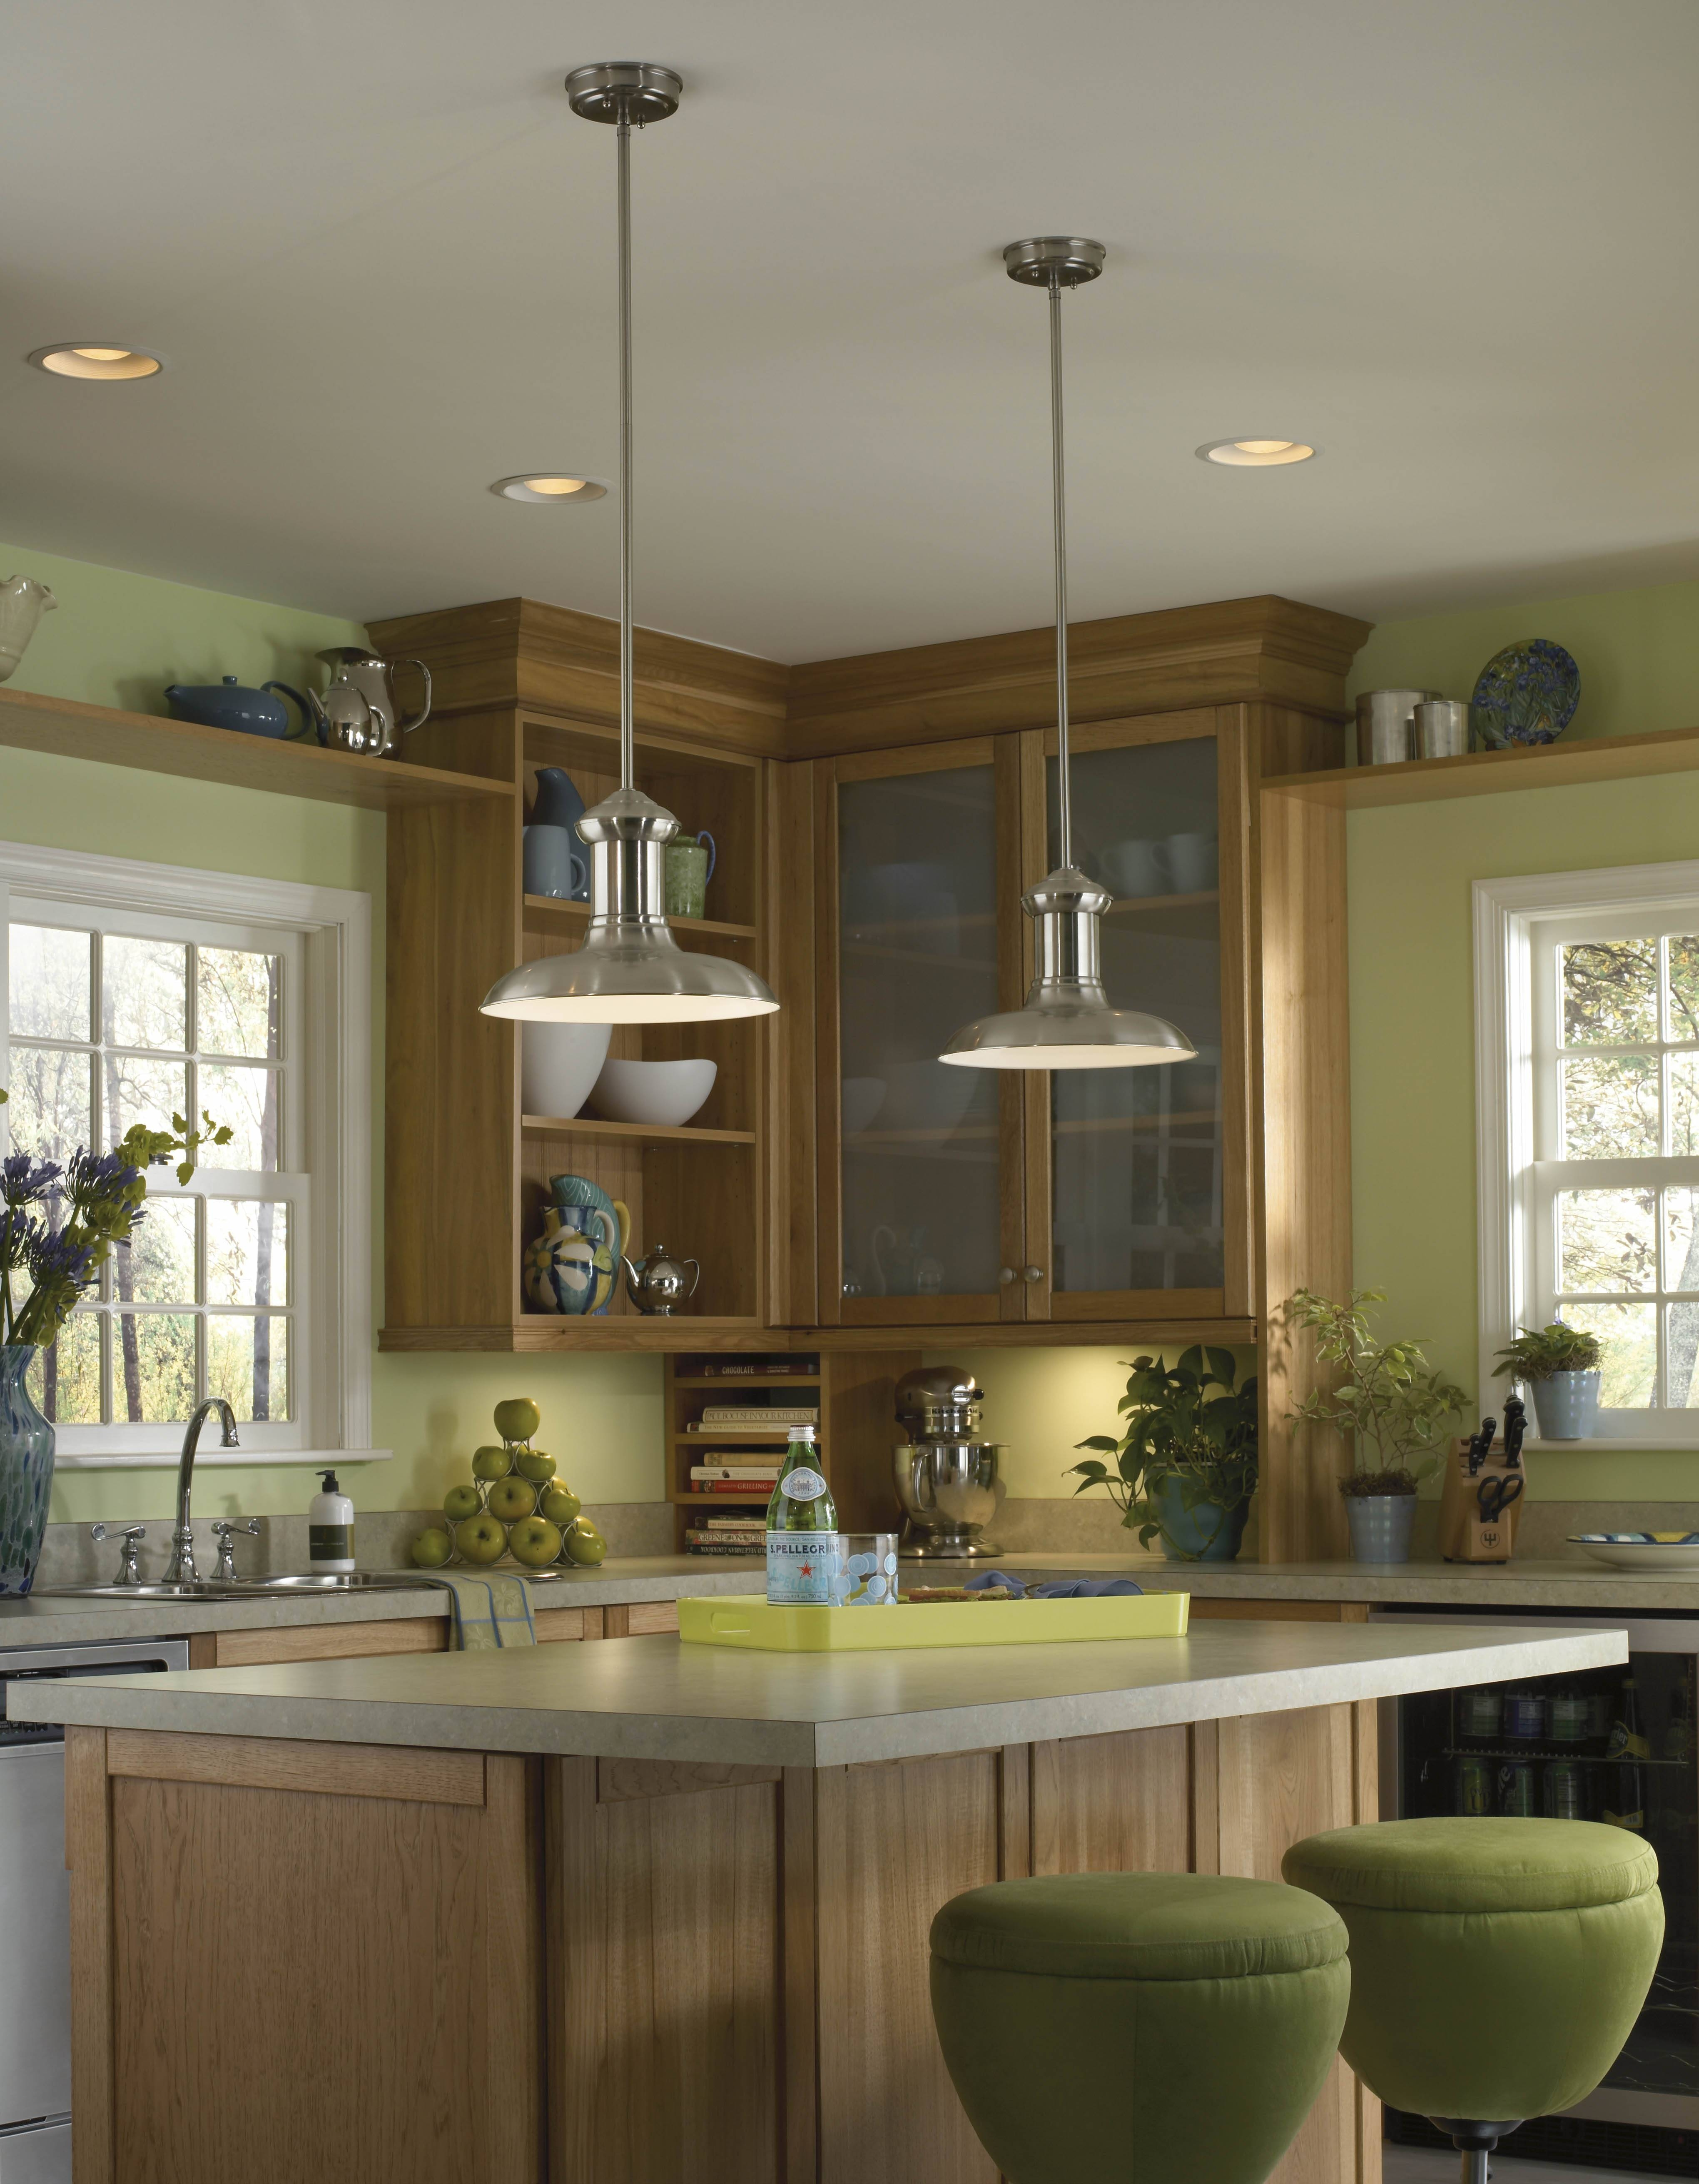 Fancy Mini Pendant Lights For Kitchen Island 44 About Remodel within Mini Pendants for Kitchen Island (Image 5 of 15)